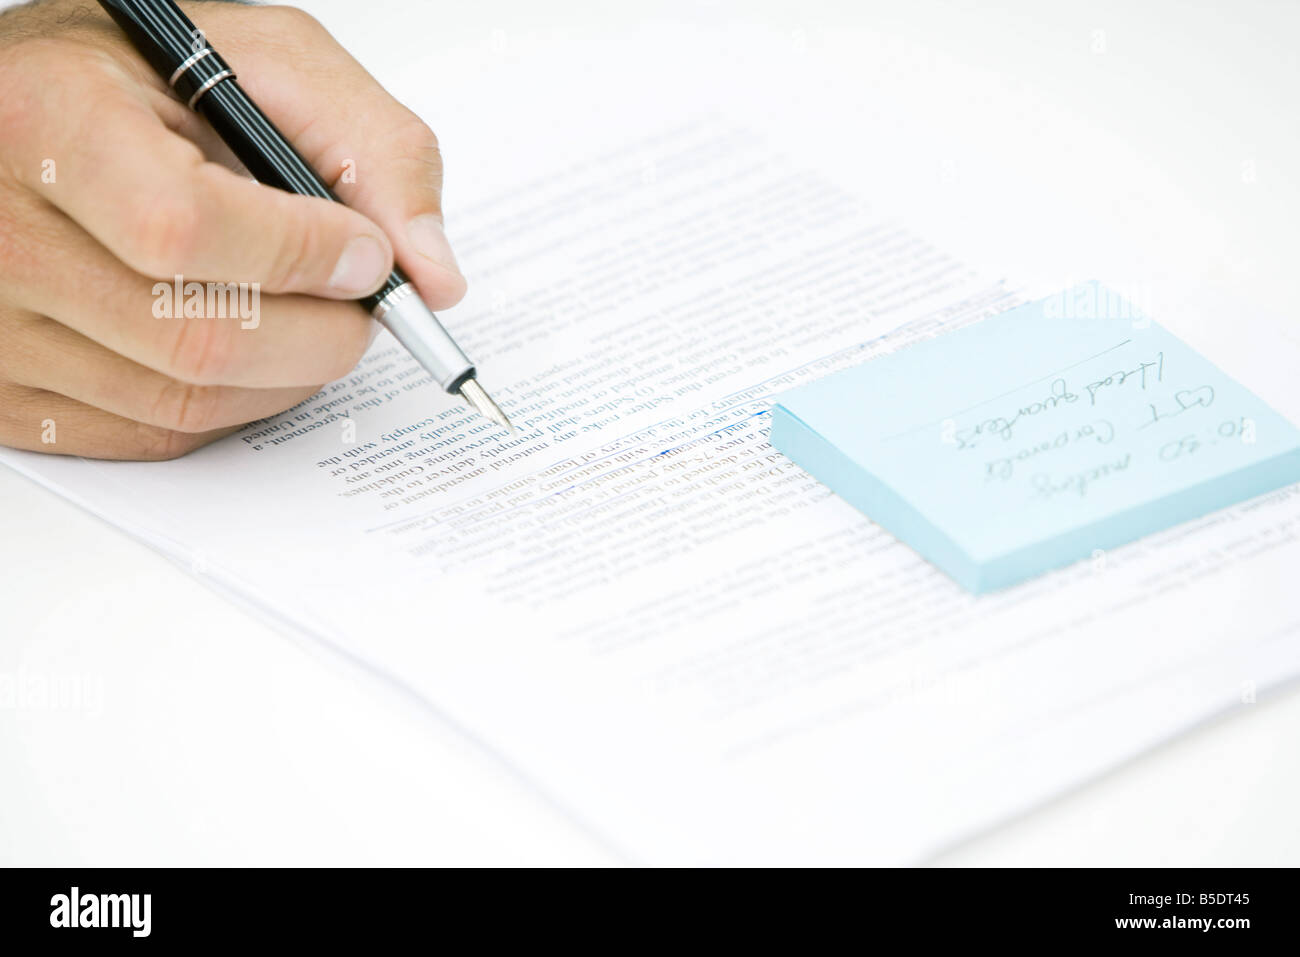 Hand holding pen, editing document - Stock Image